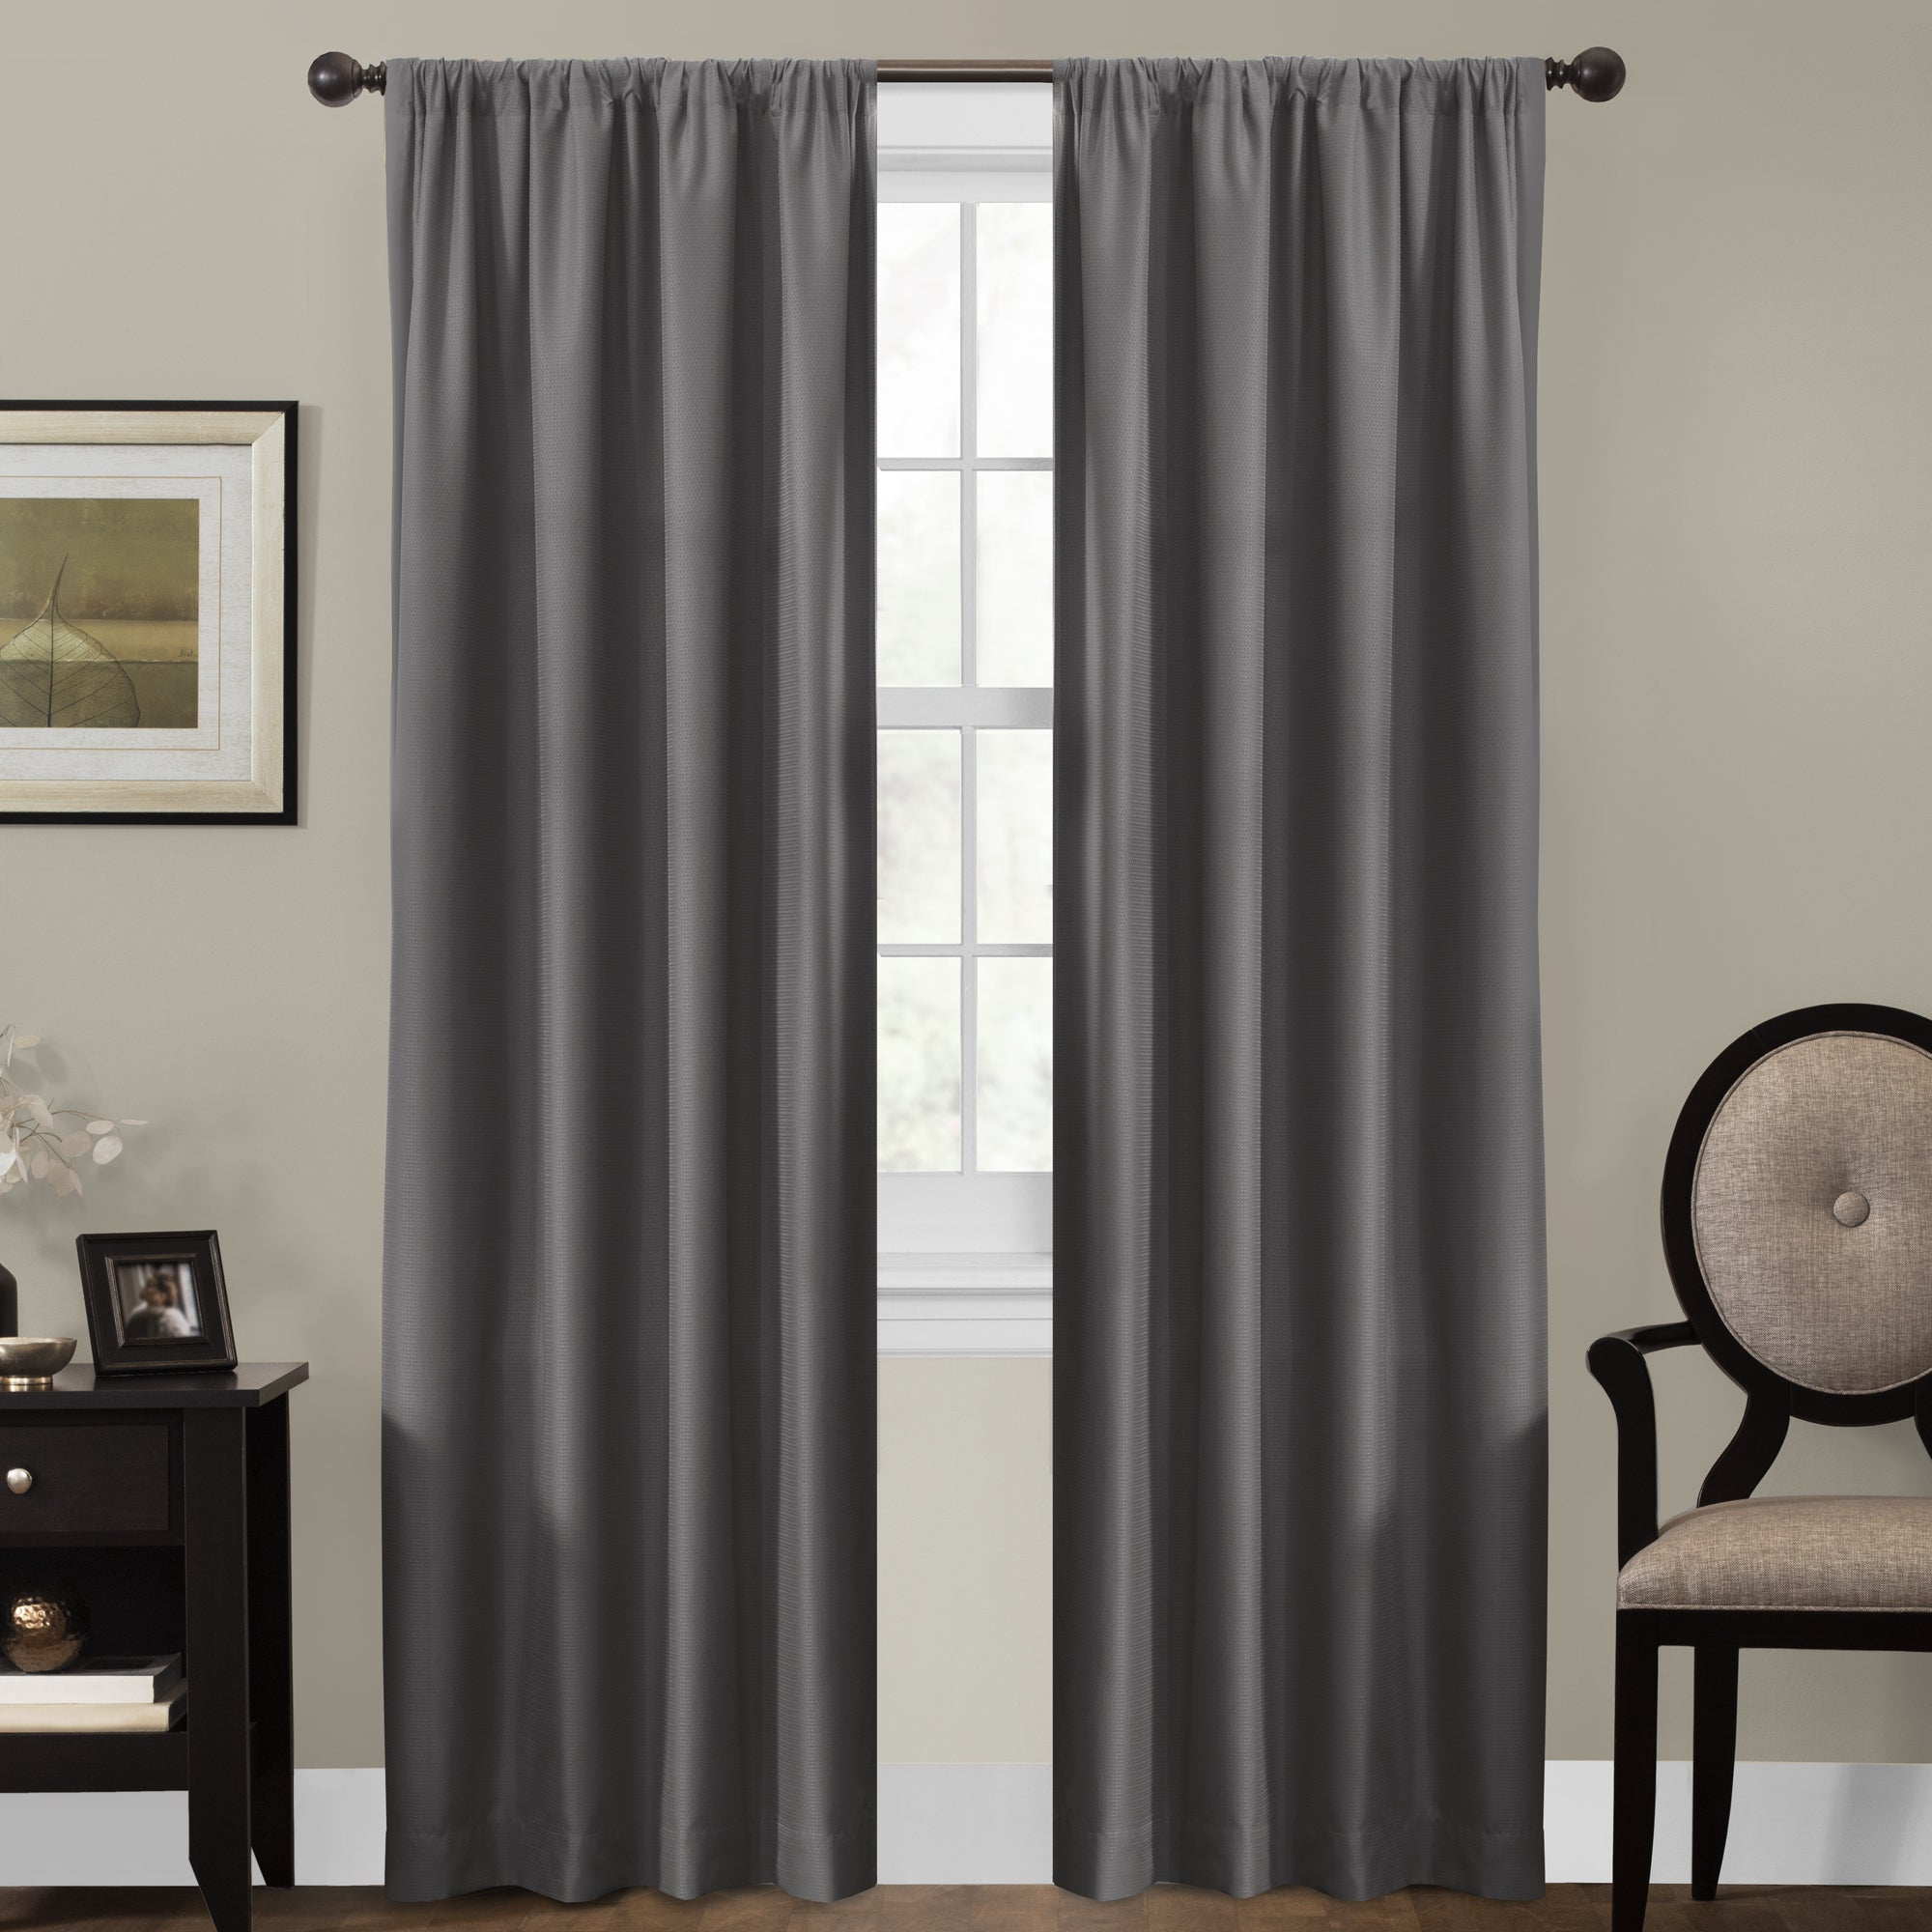 drapes panels grommets with extra wide curtain double large windows for rod best unusual rods curtains imagination inch